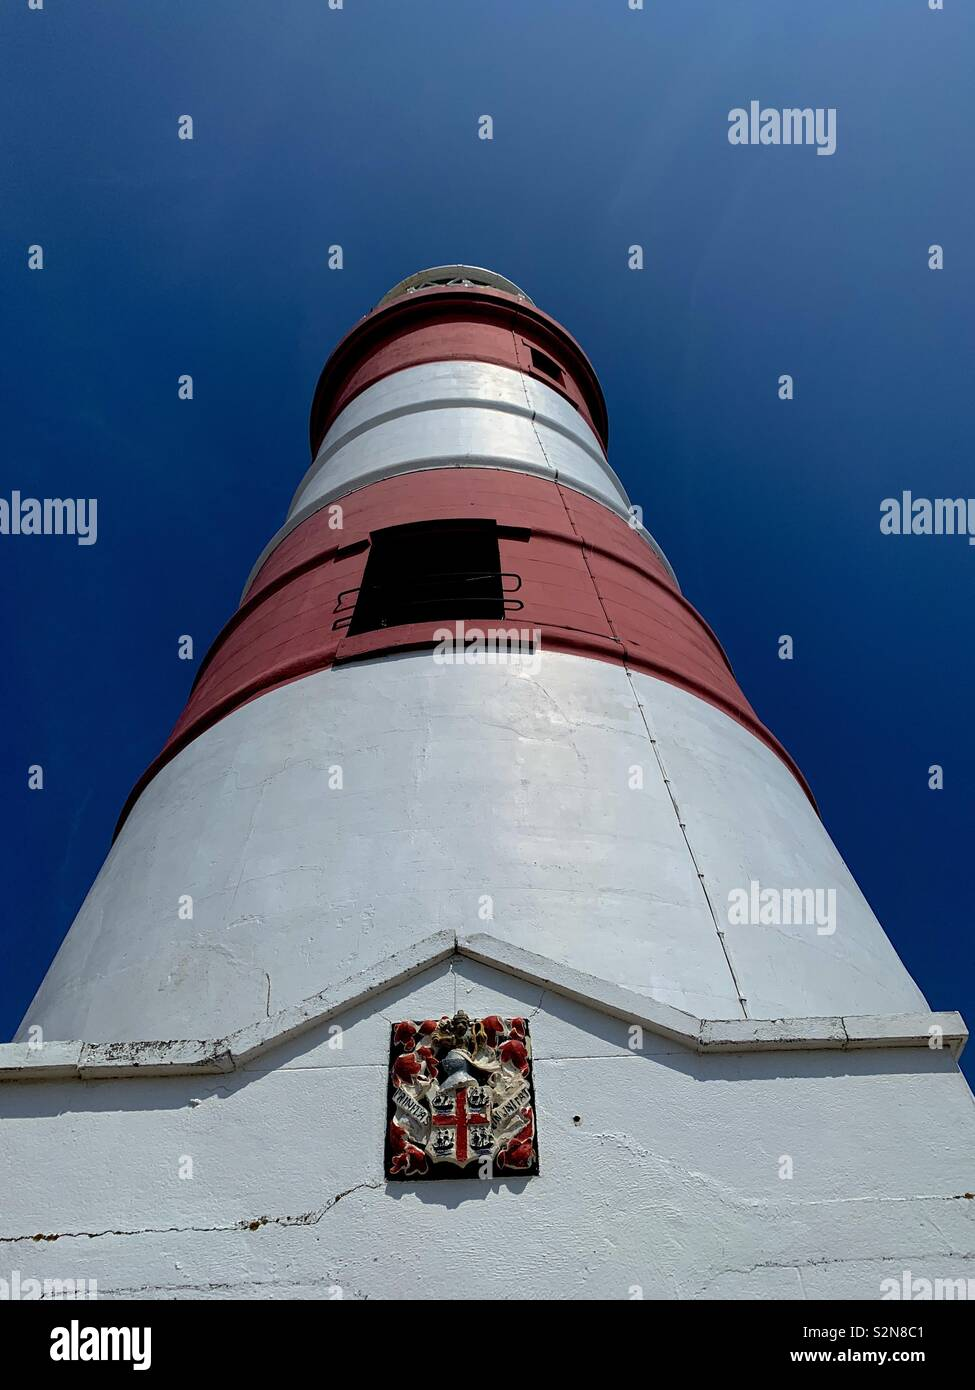 Orfordness lighthouse in a summer sky - Stock Image